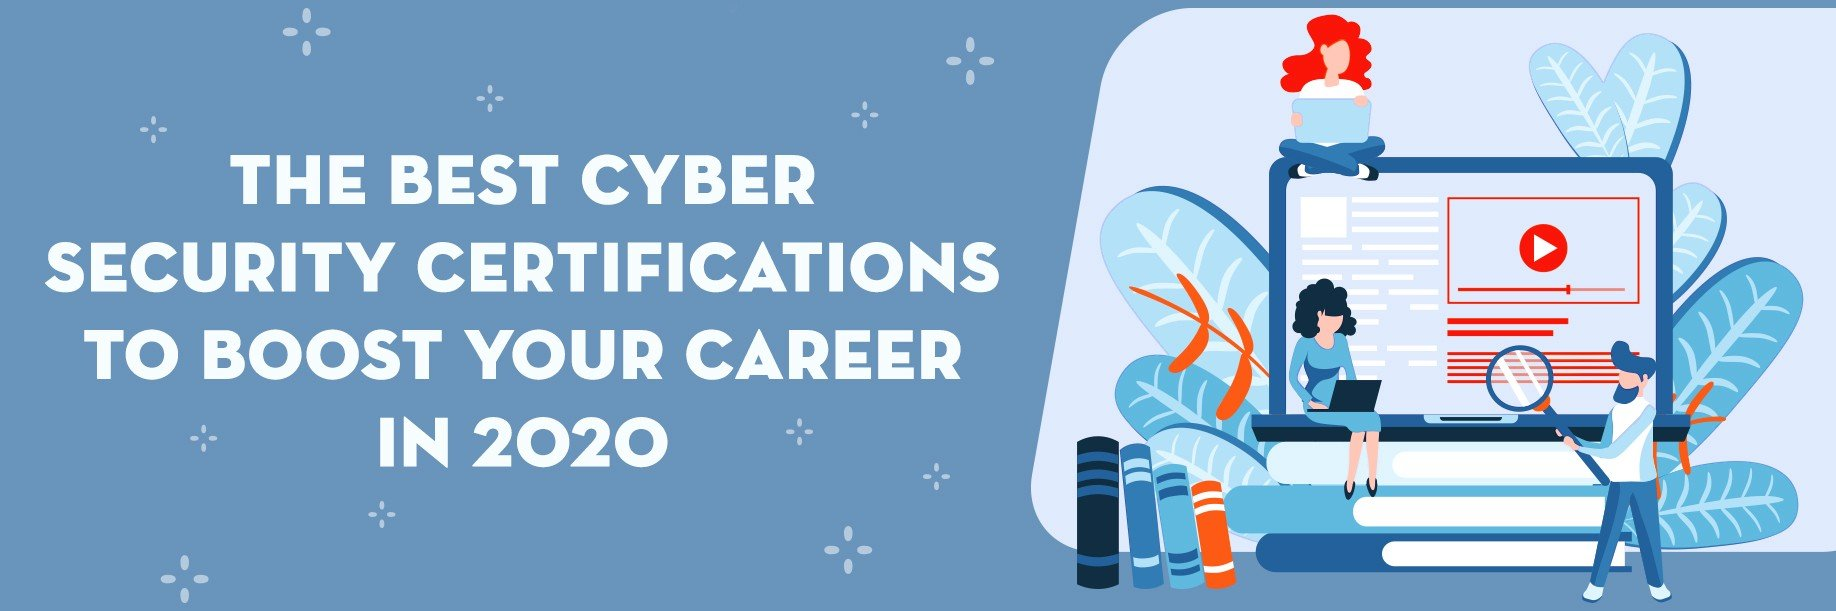 security certifications2 - Top Certifications to Build the Perfect IT security Career